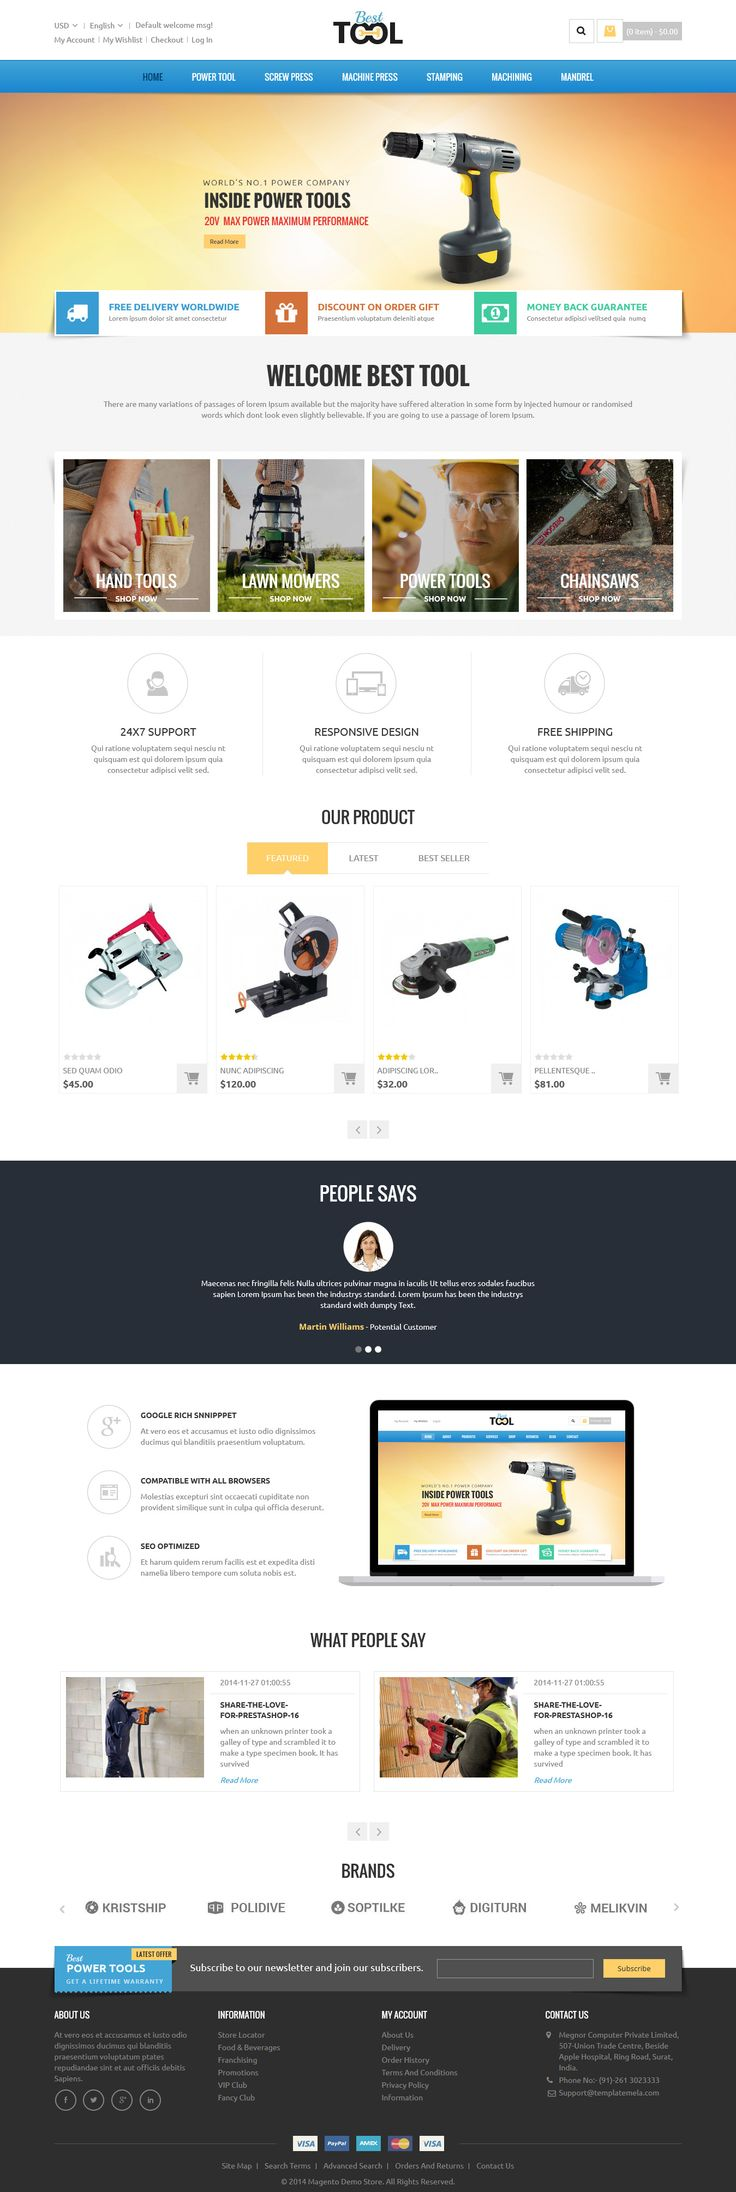 Free website templates for free download about (2,503) 21